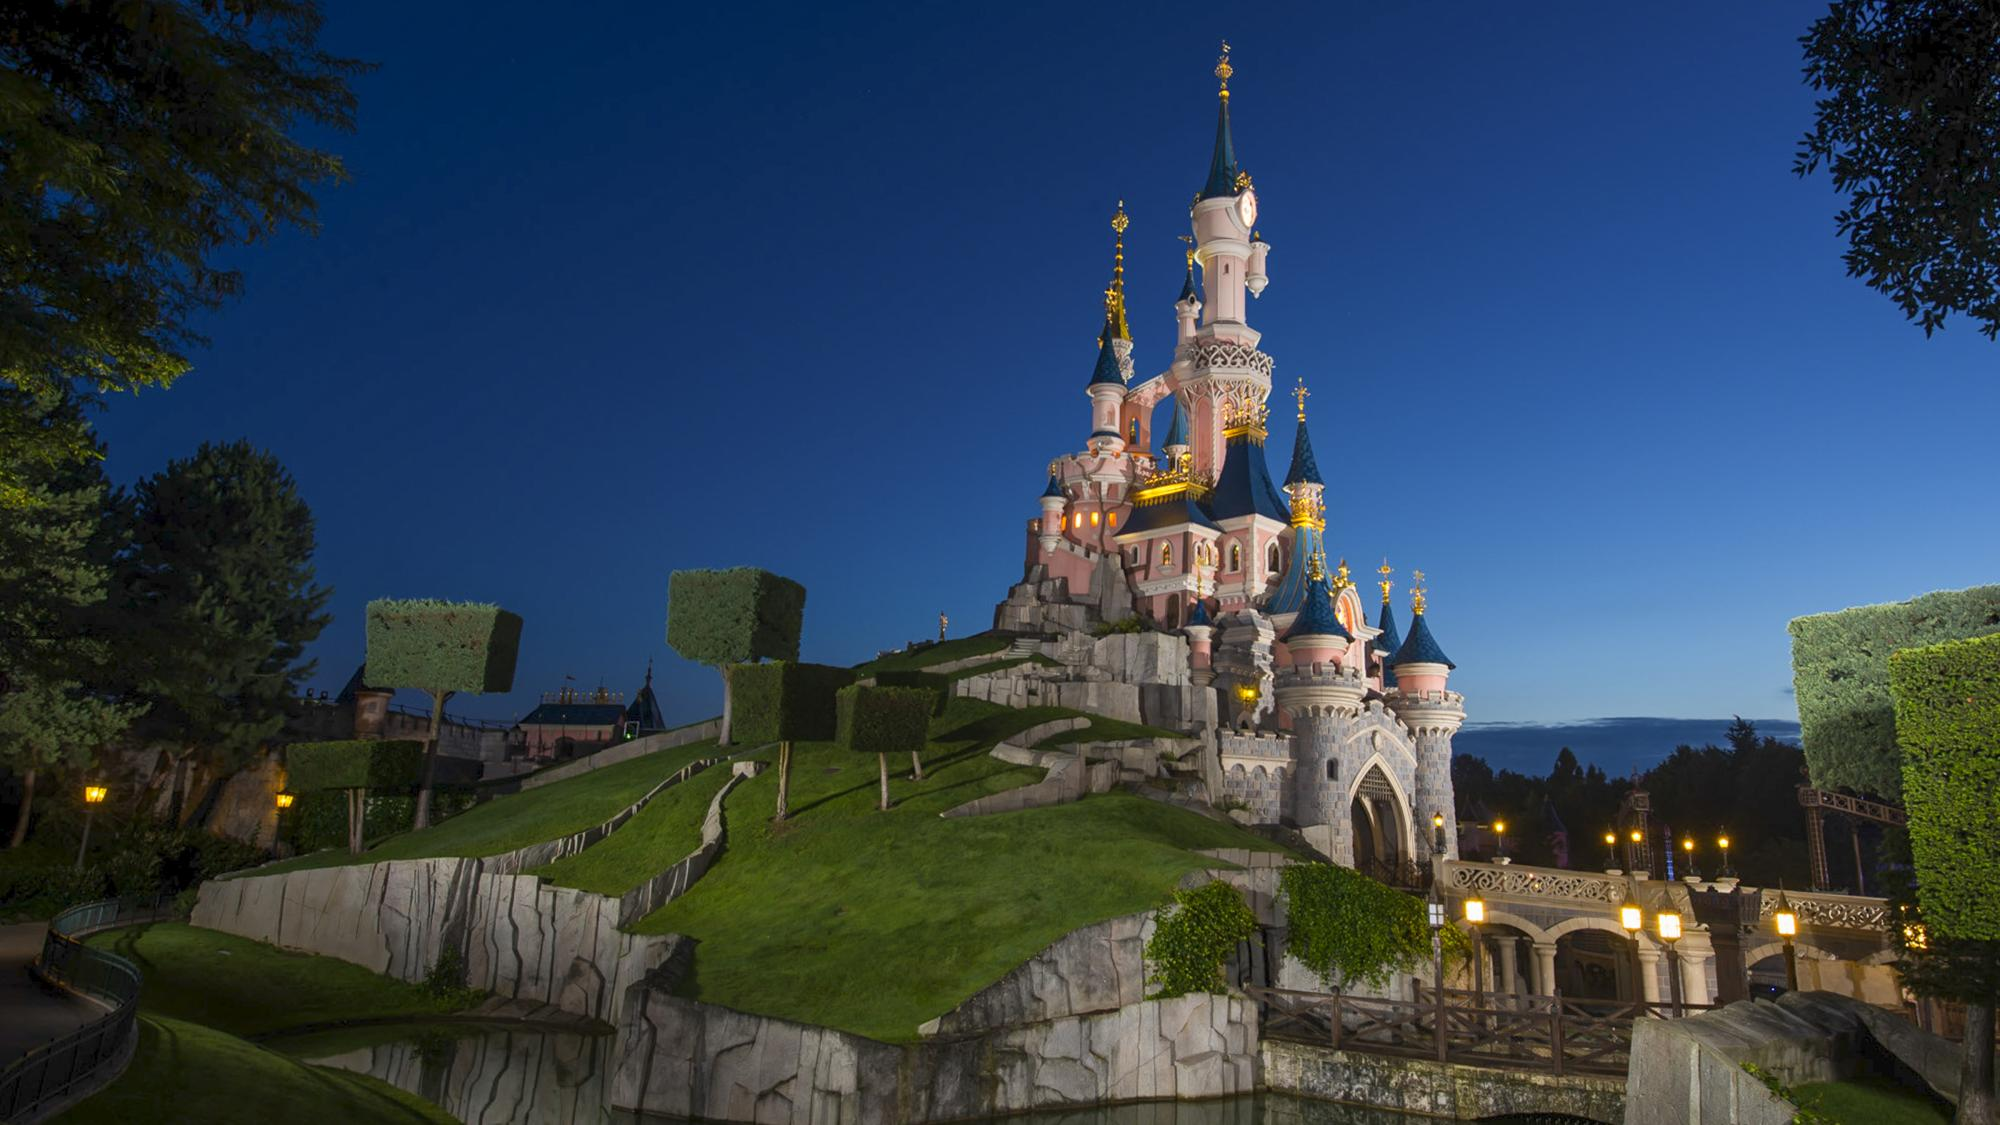 Best Time To Travel To Disneyland Paris